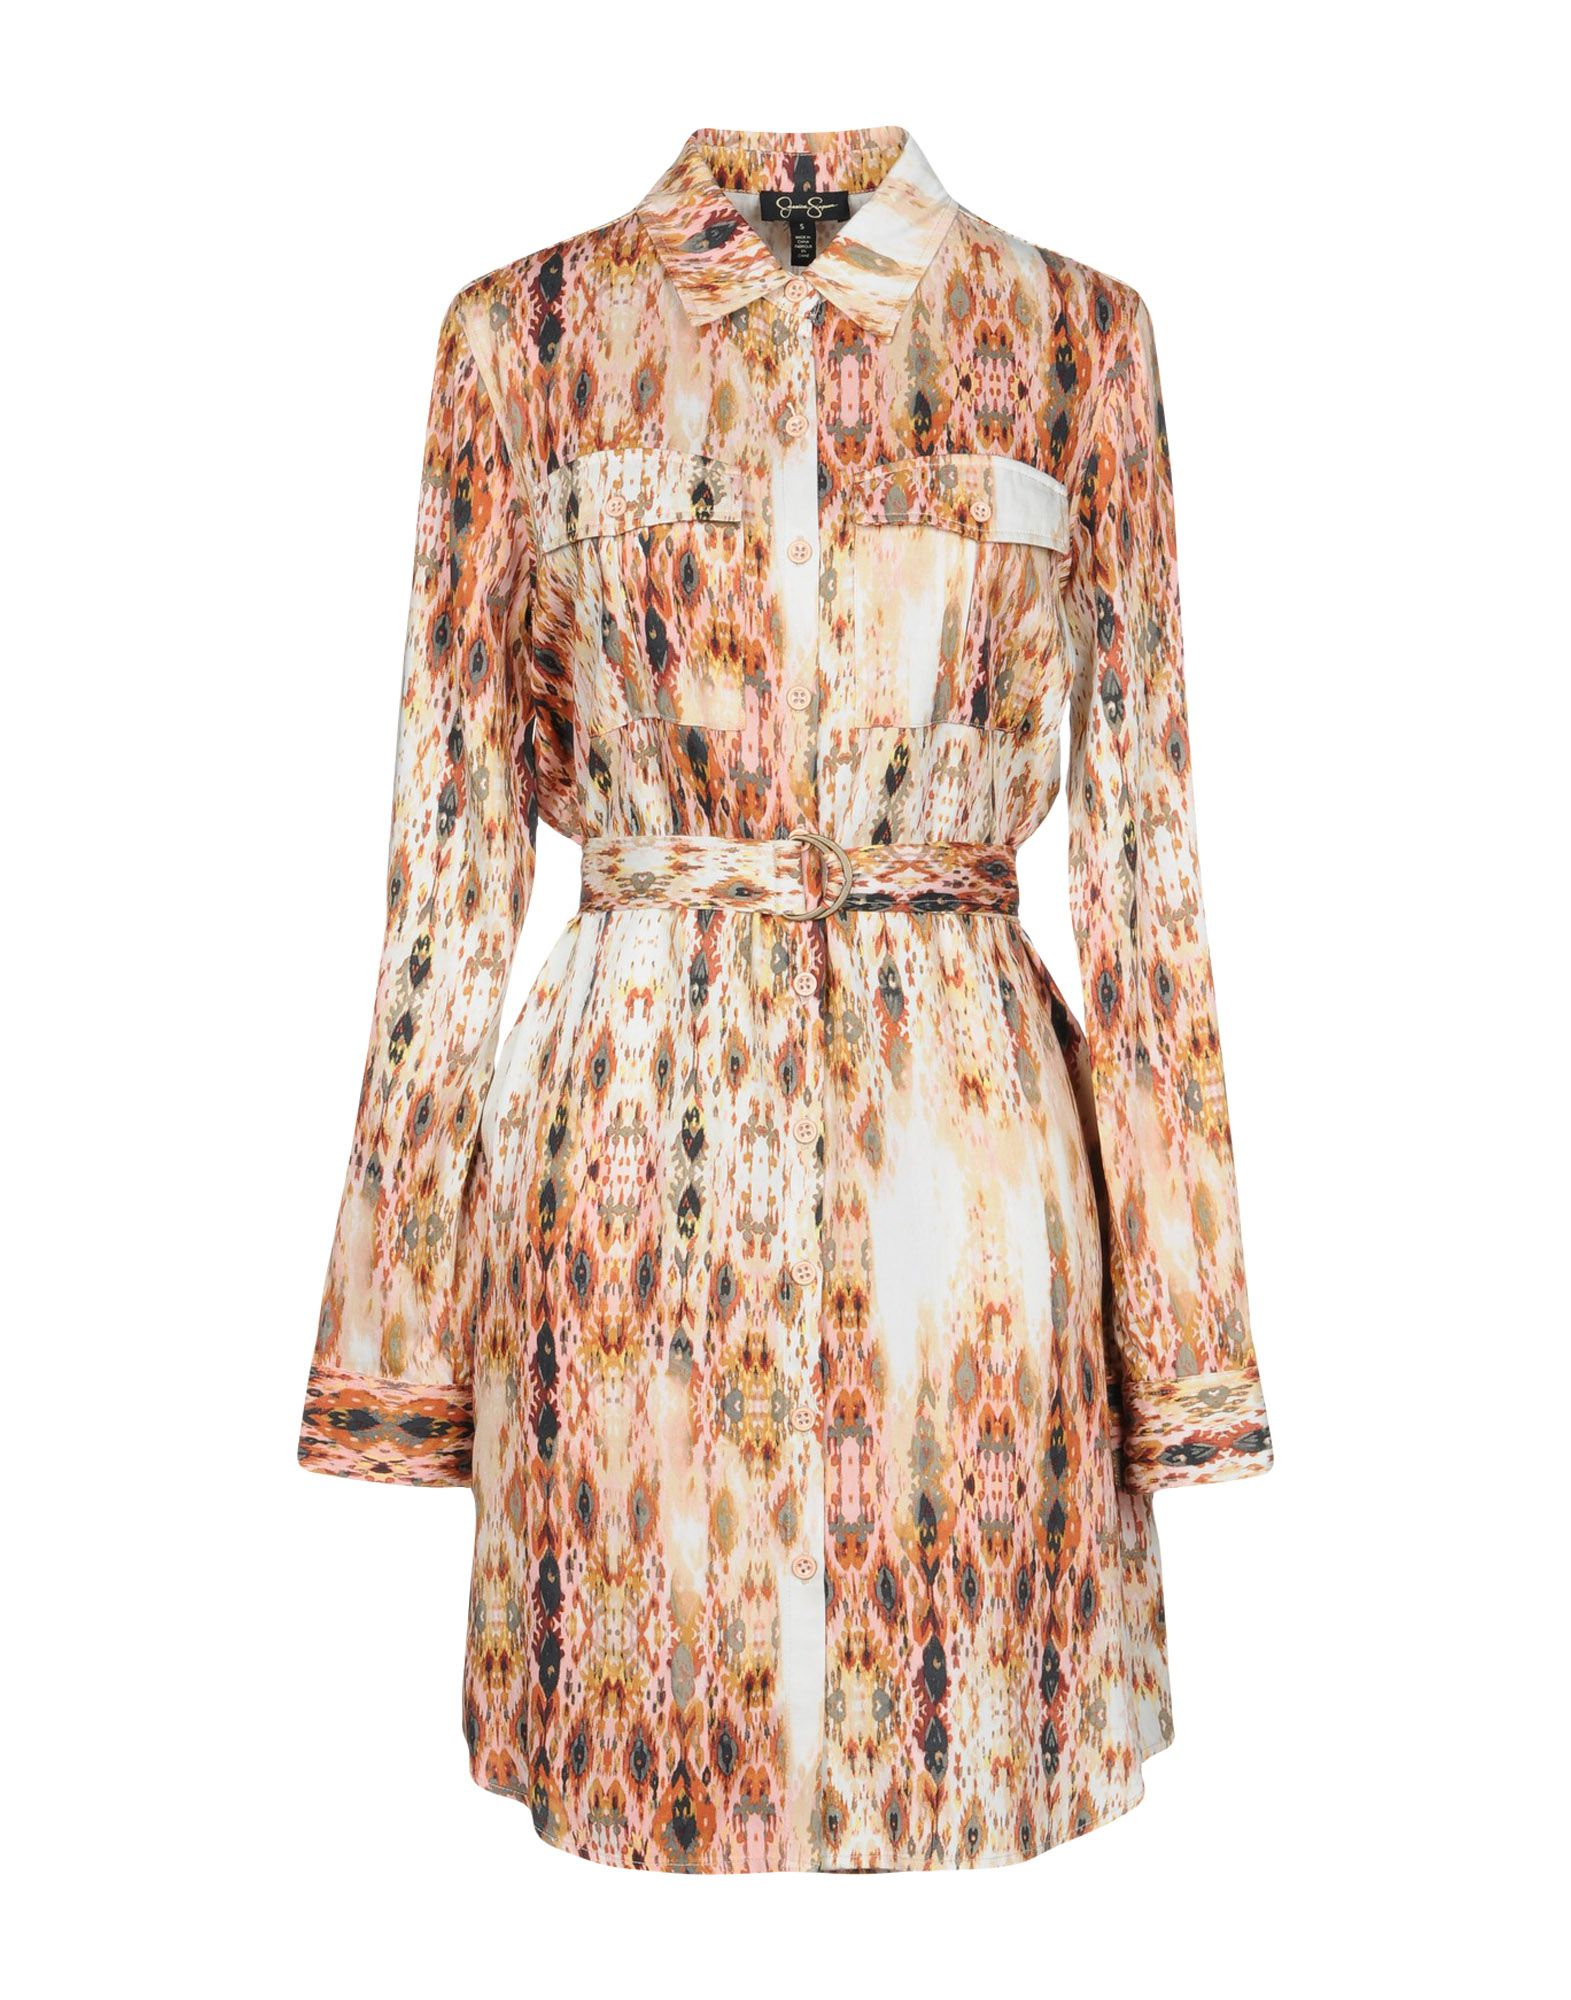 JESSICA SIMPSON Короткое платье jessica simpson new multi butterfly sleeve printed cover up tunic l $68 dbfl